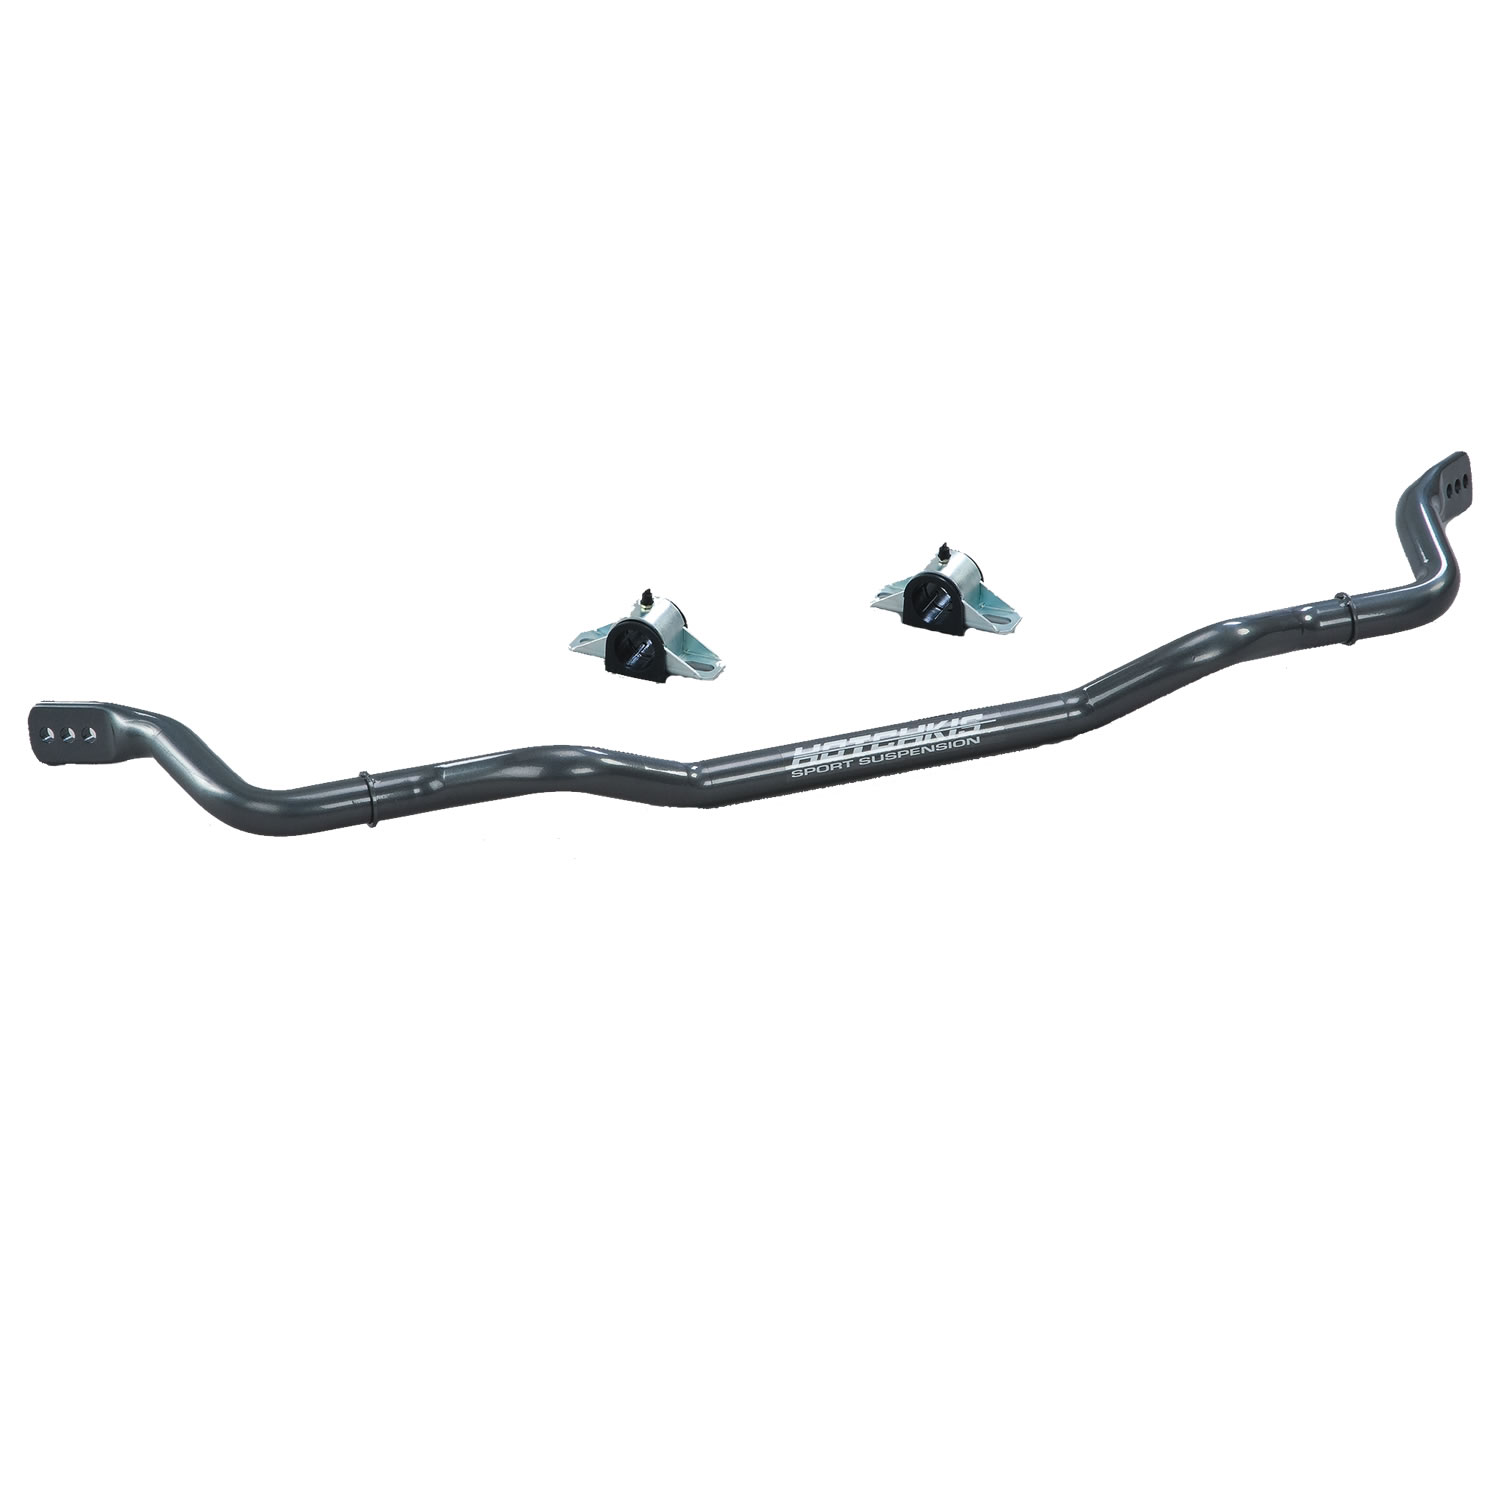 08-11 Mitsubishi EVO X Rear Sport Sway Bar Set by Hotchkis Sport Suspension